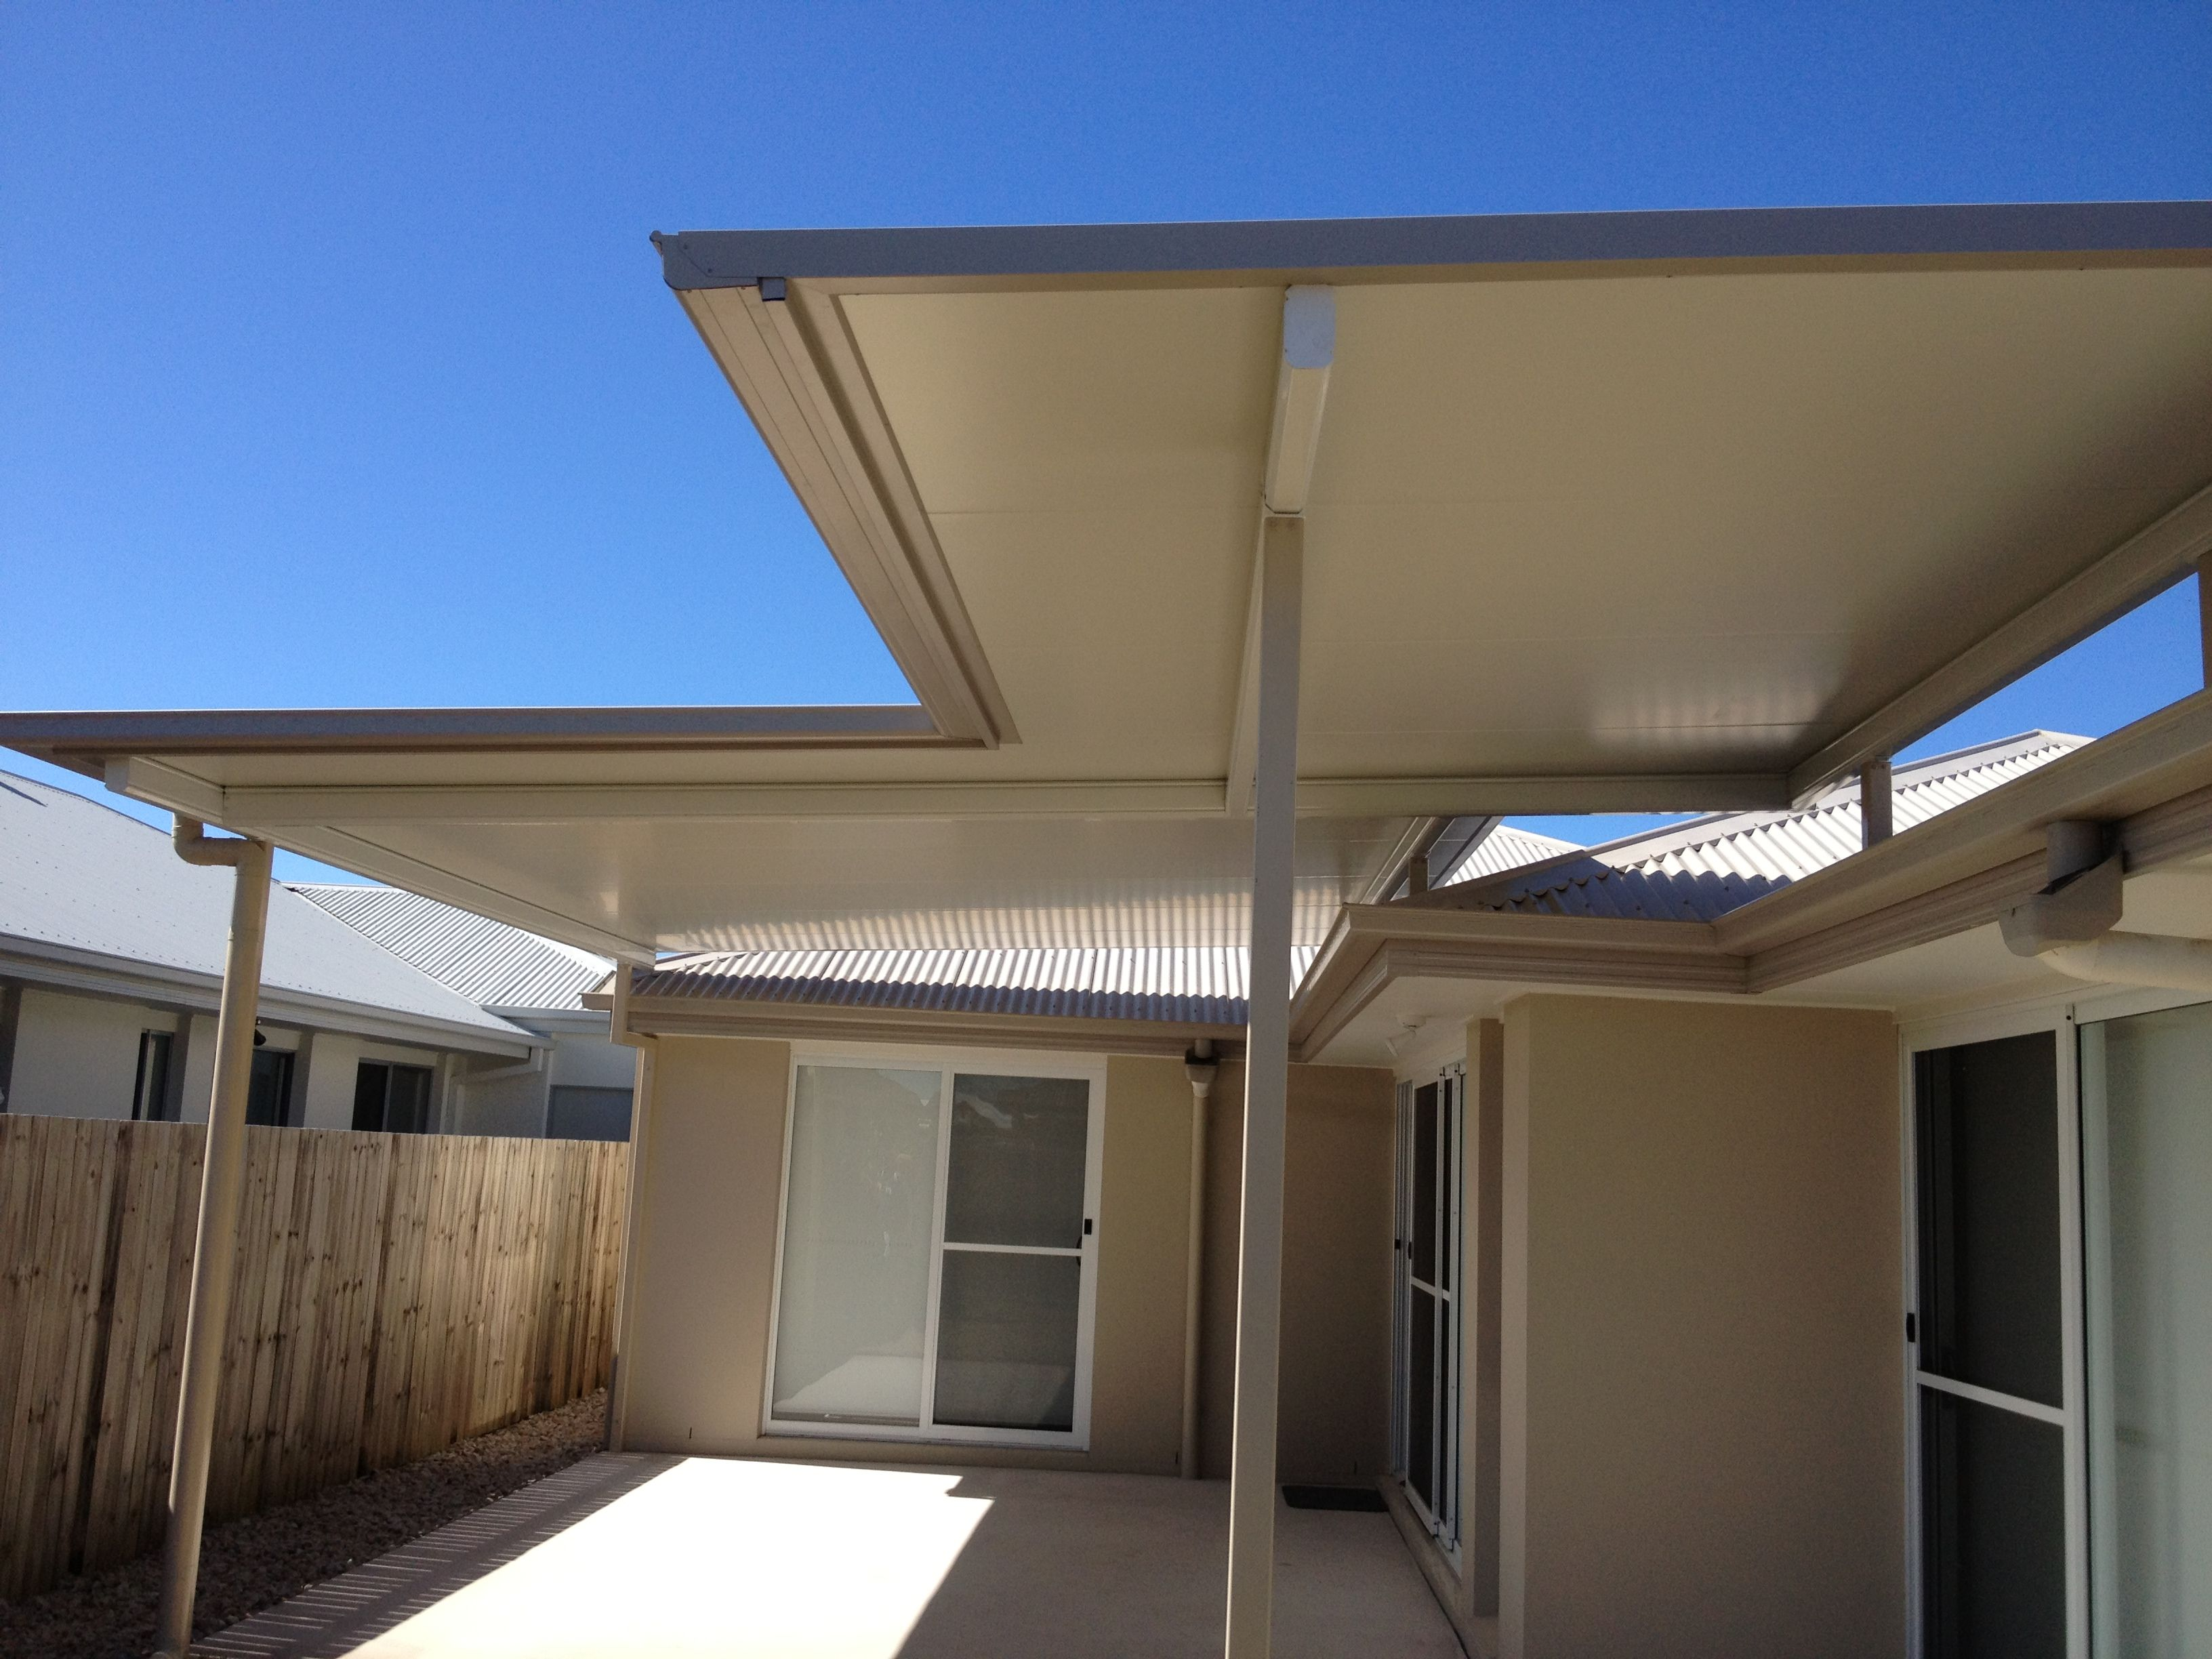 Stratco Cooldek Fly over Patio that was built to provide cover for